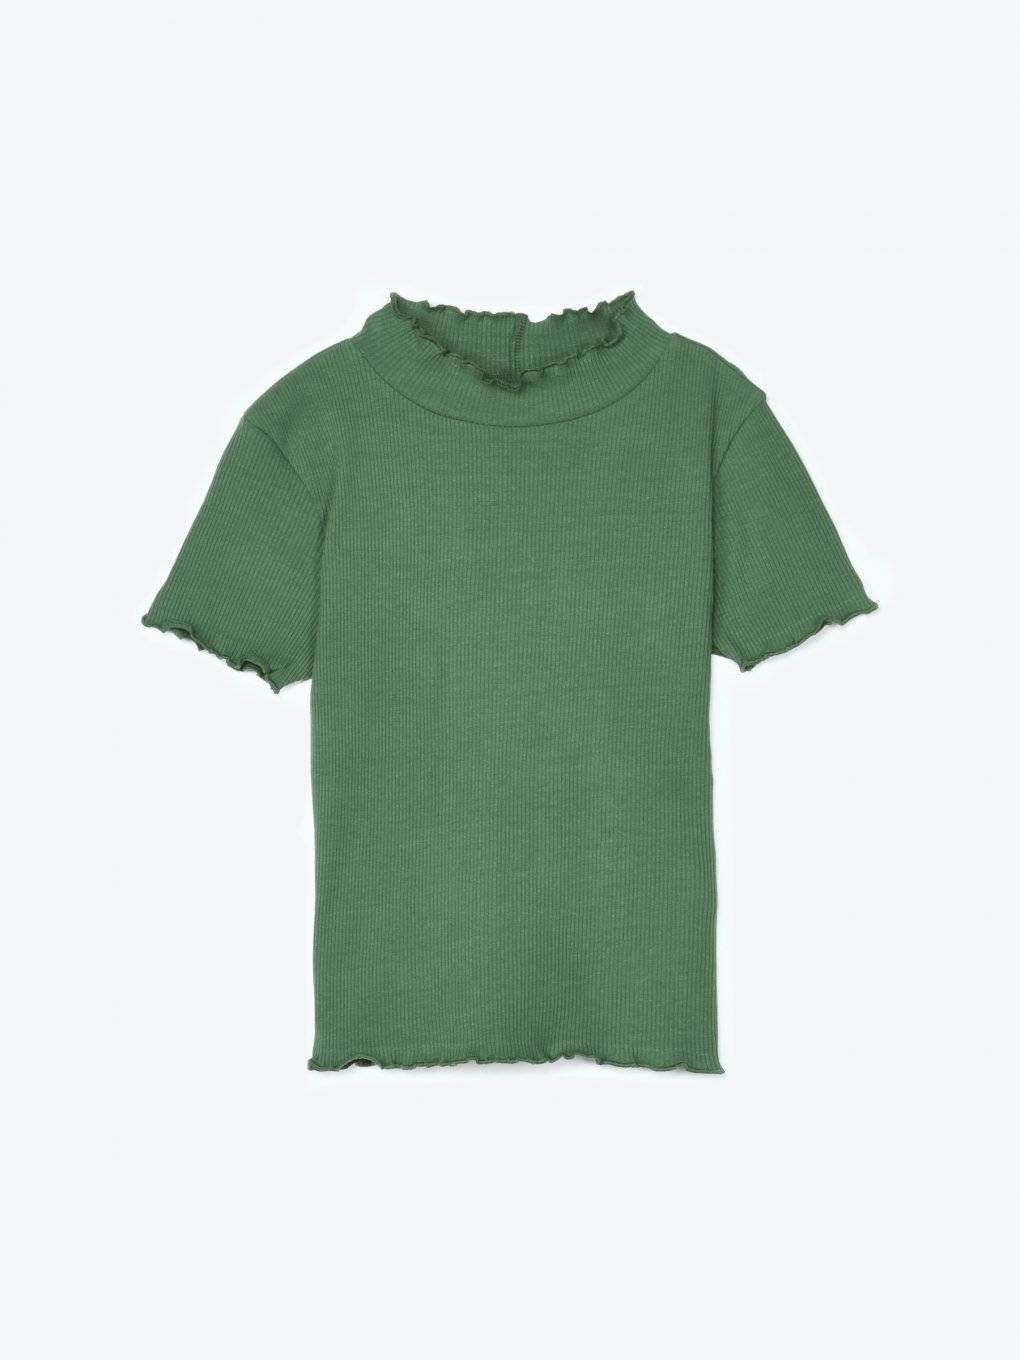 Ribbed short sleeve t-shirt with collar